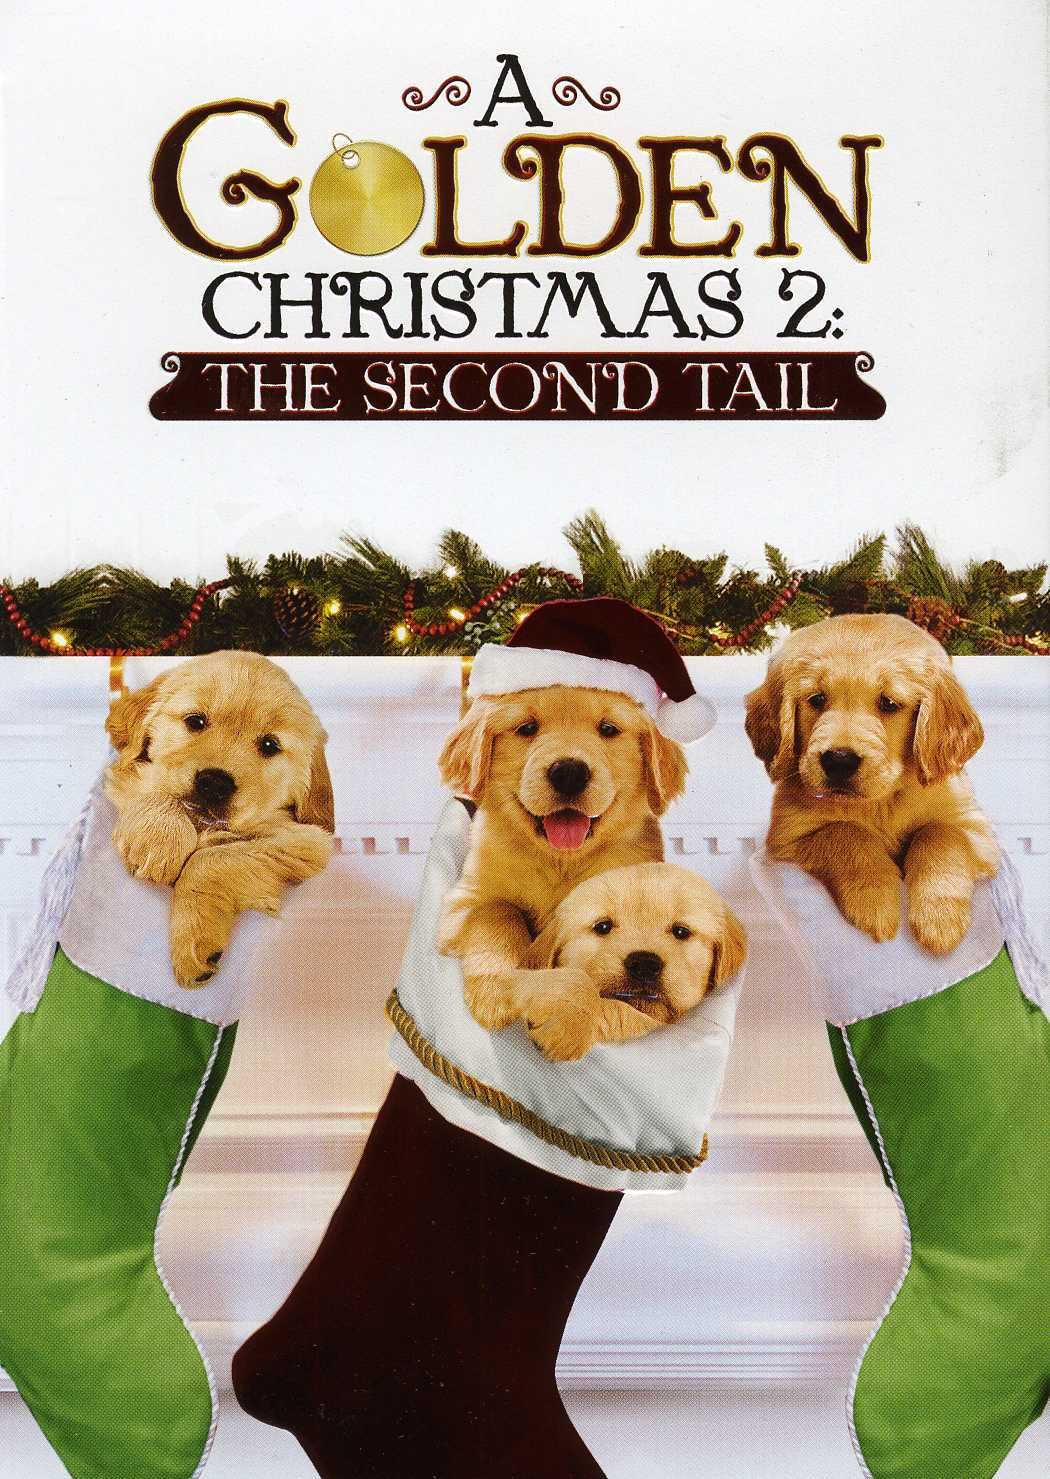 A Golden Christmas 2: The Second Tail (DVD)